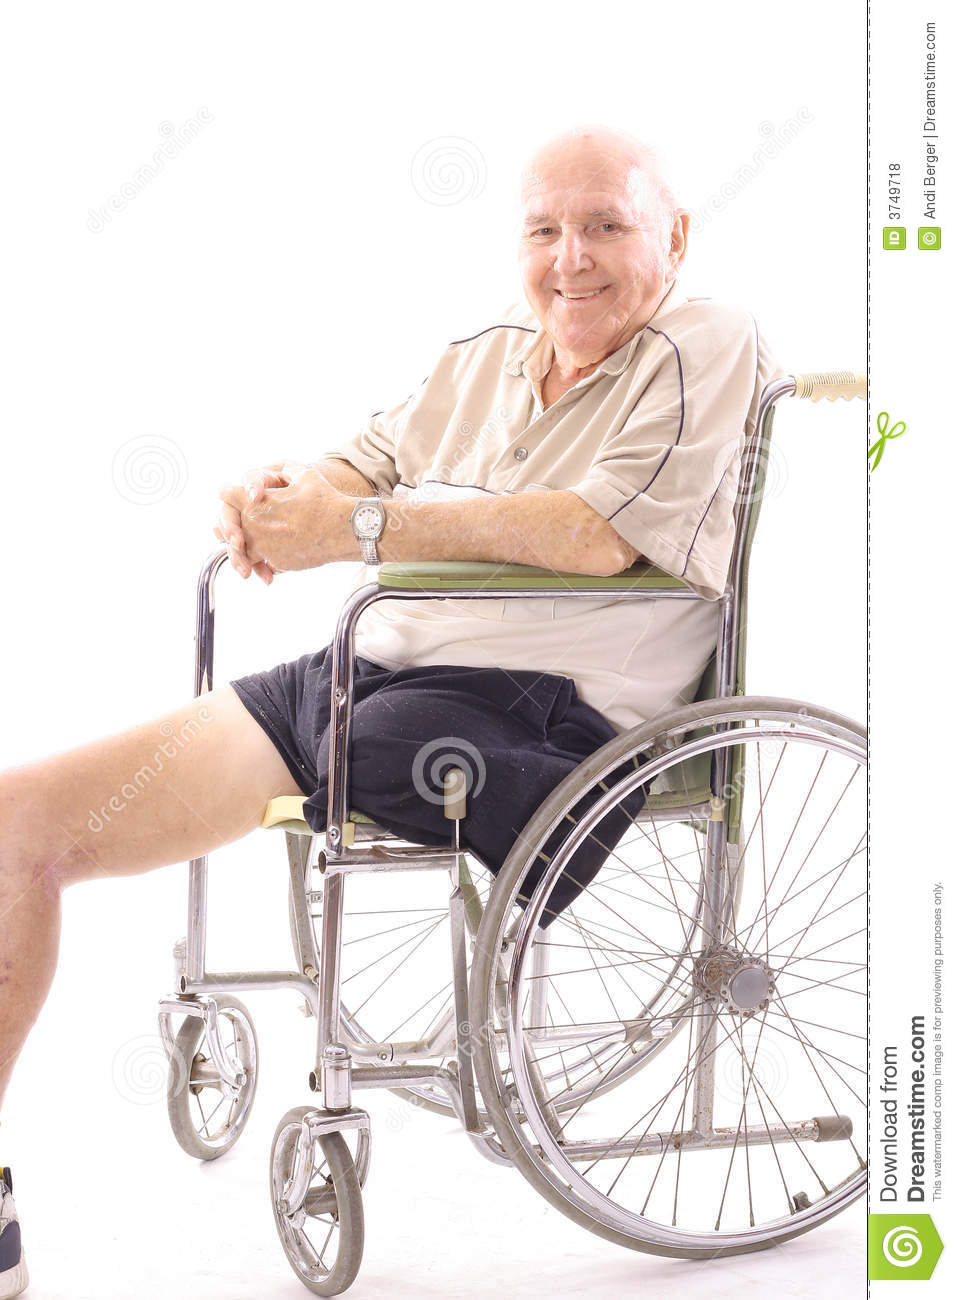 Handicap man in wheelchair royalty free stock photos Handicap wheelchair